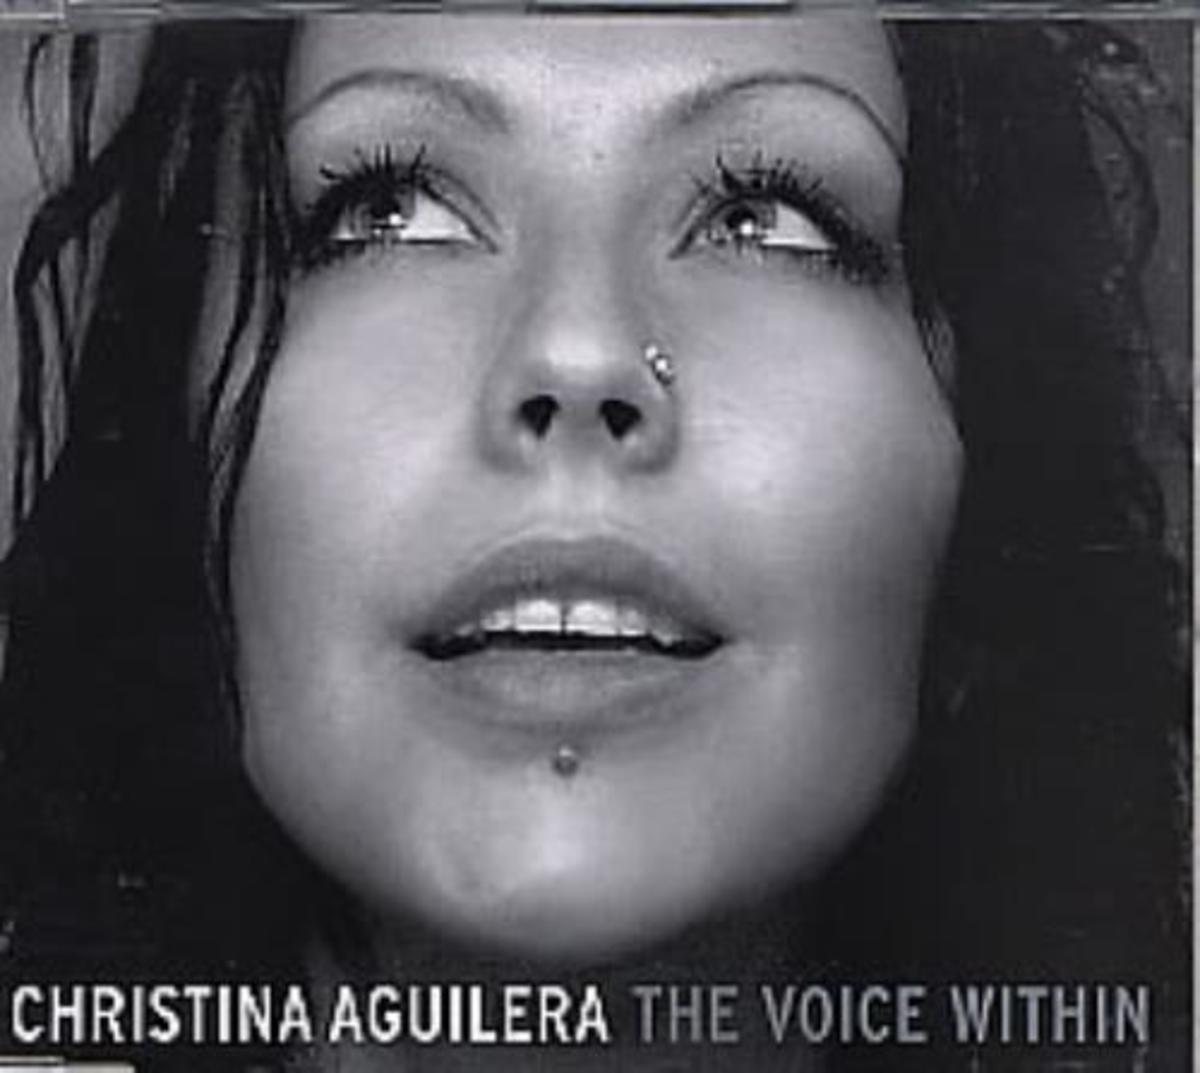 The Voice Within (Christina Aguilera)